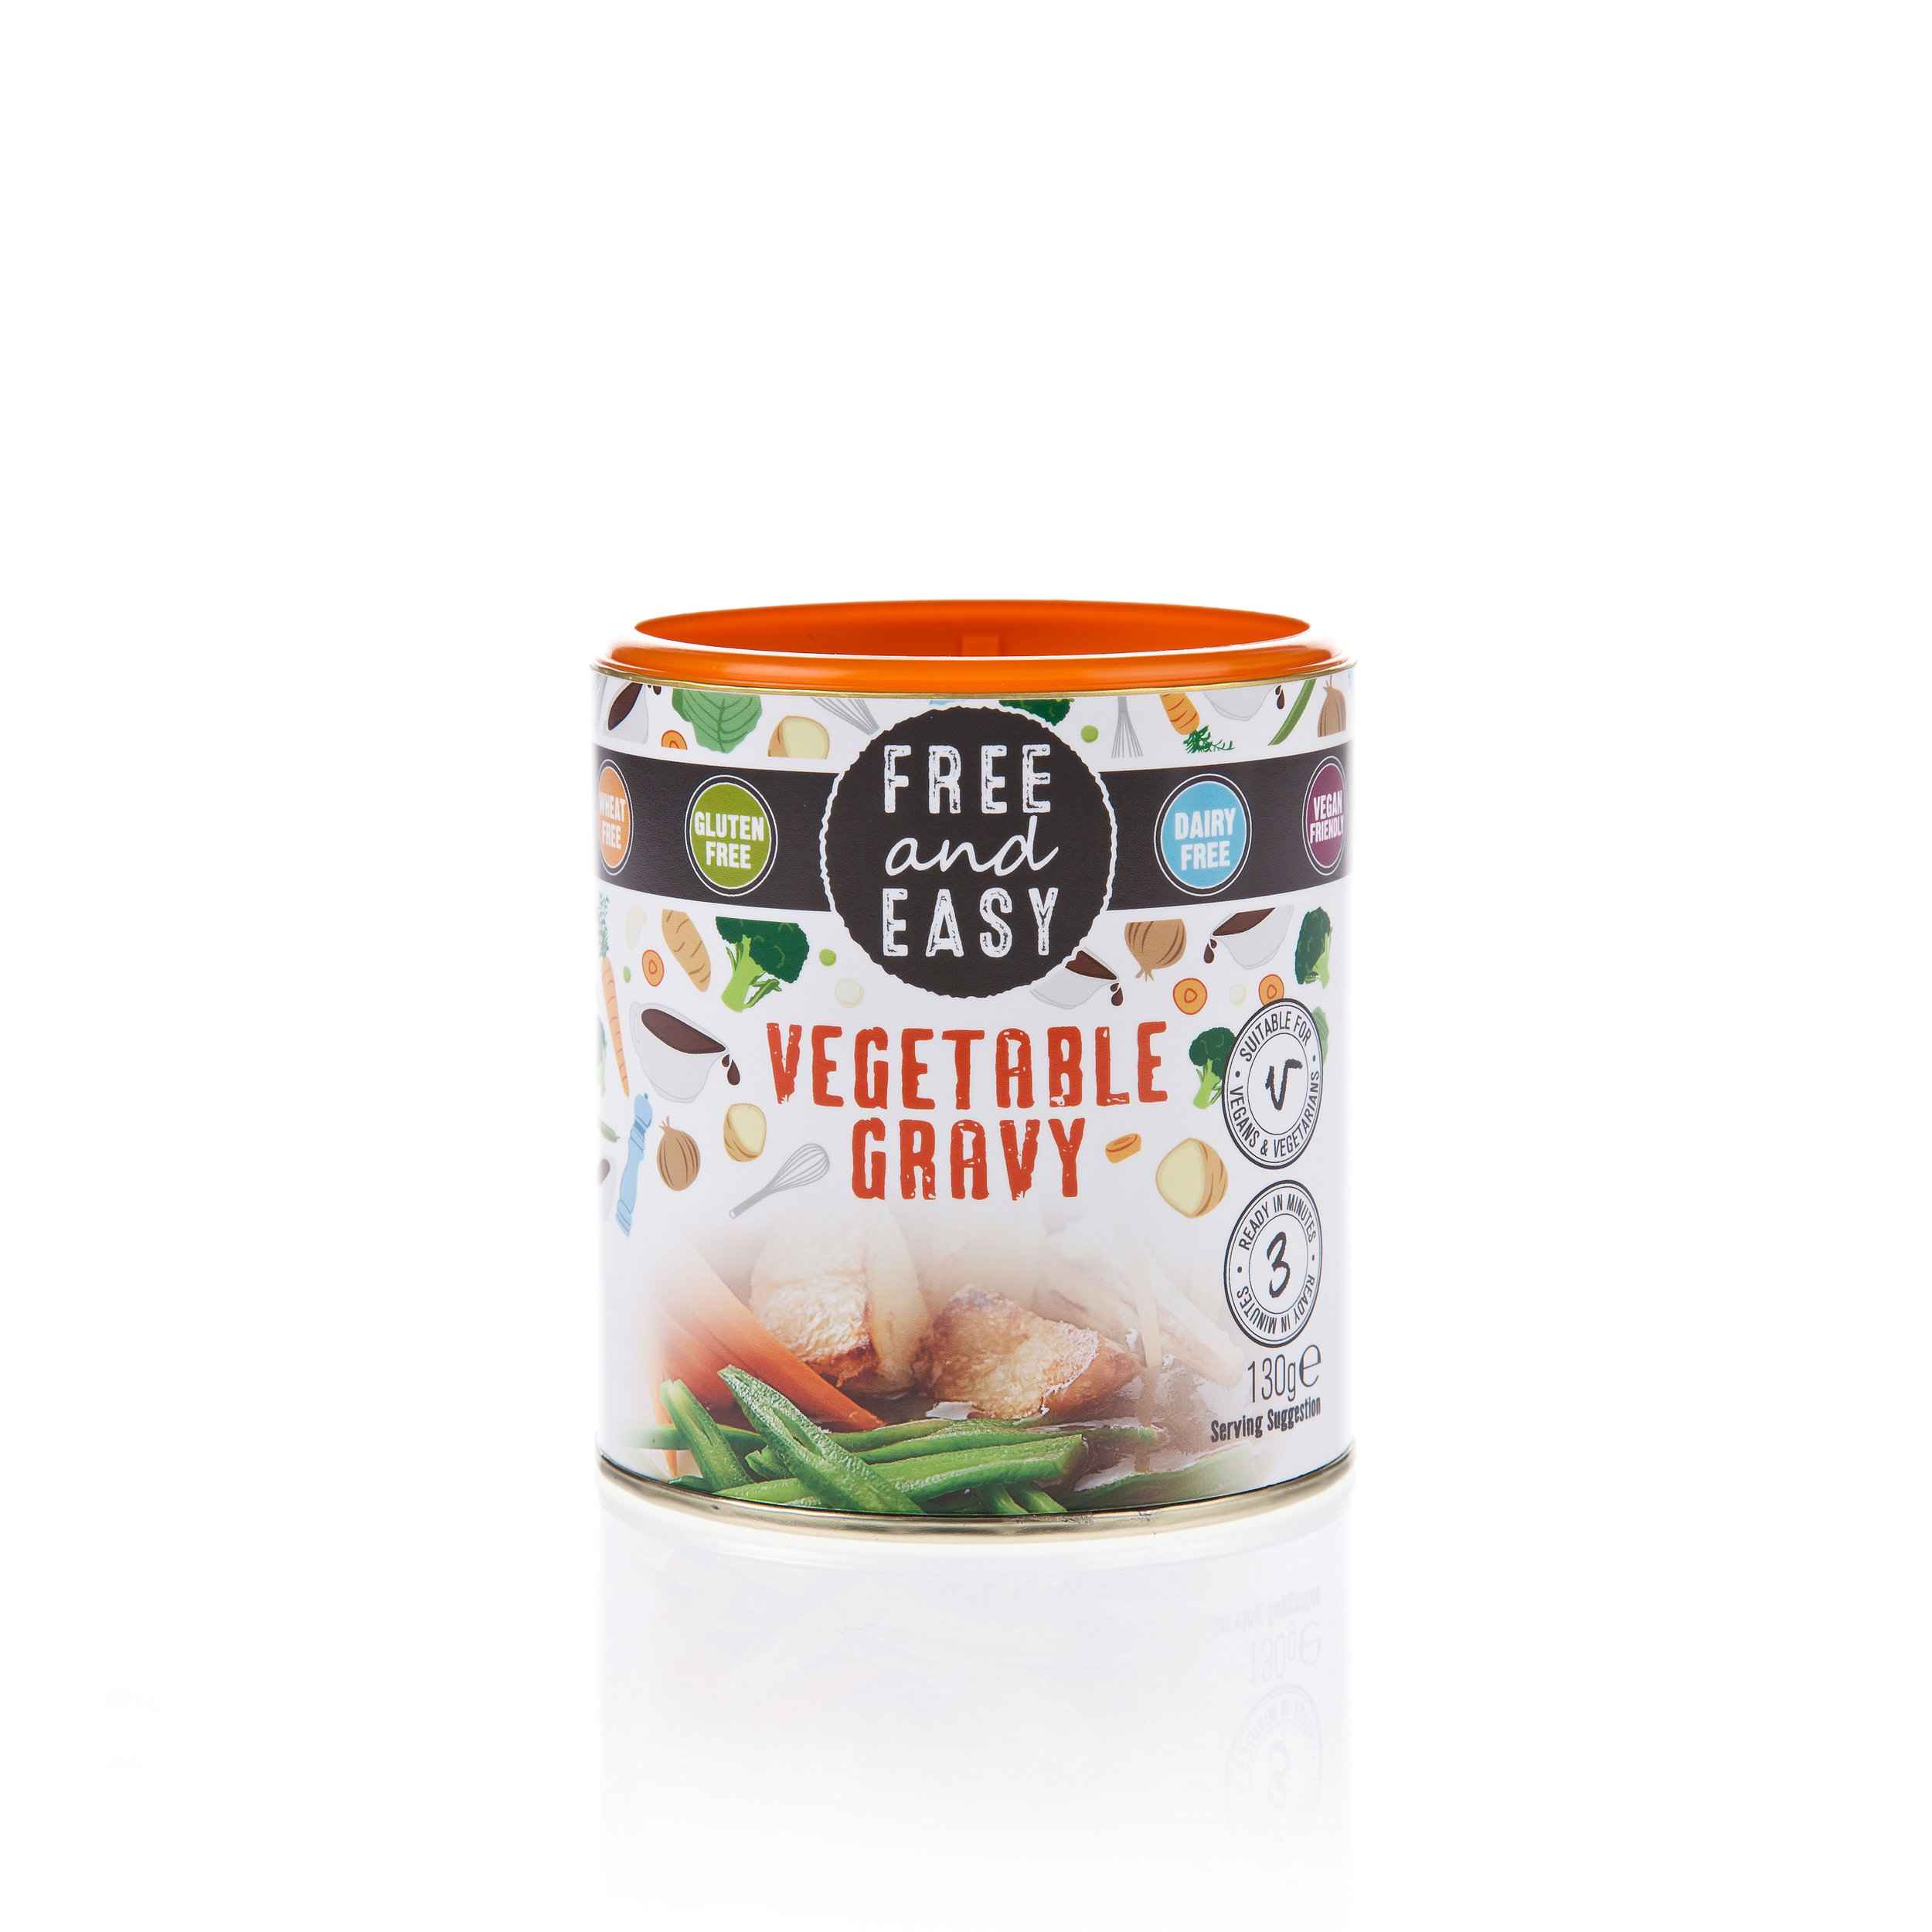 Free and Easy Vegetable Gravy - A blend of dried cereals and vegetables, The easy way to make a rich flavoured sauce.130g